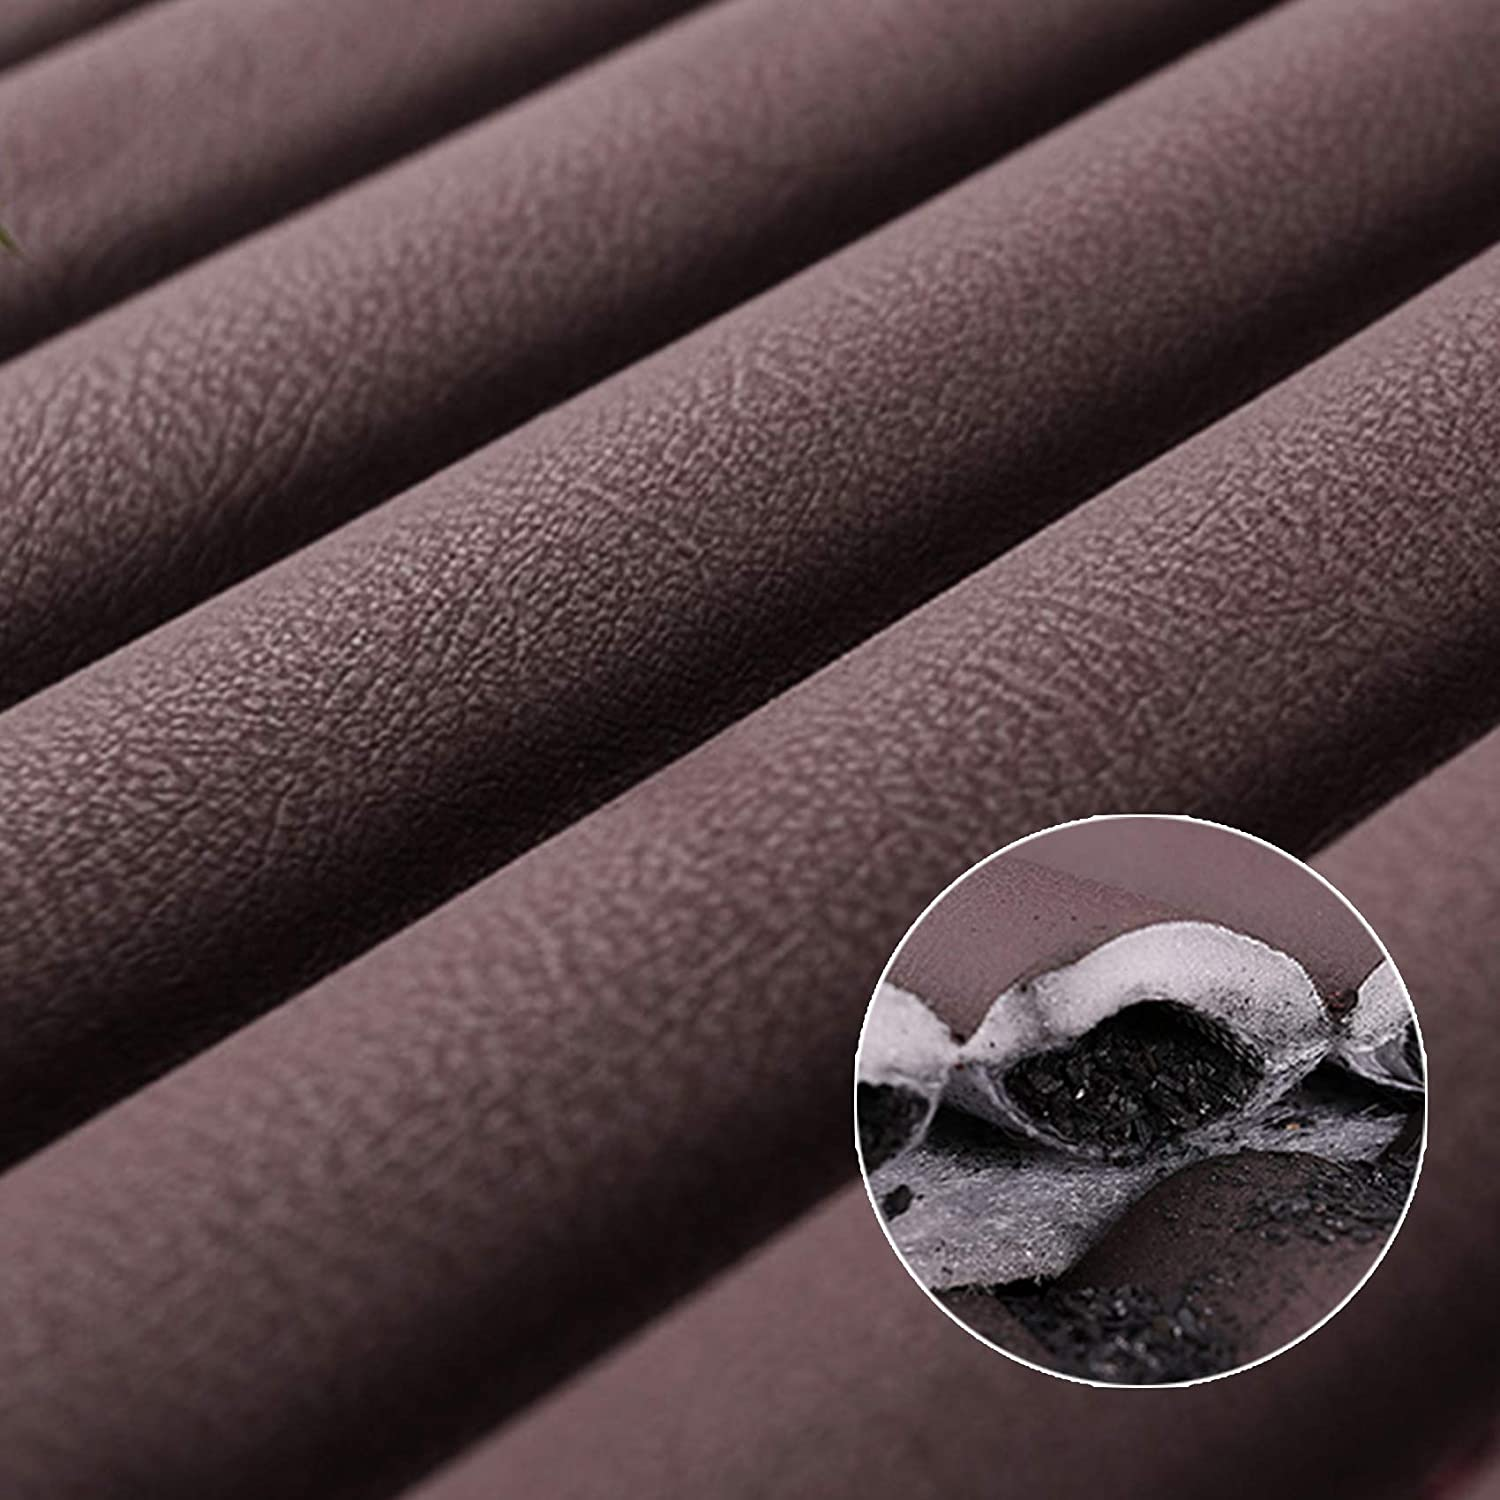 PU Leather Seat Covers for Cars Trucks SUV Car Seat Cover Universal Protector-Waterproof /& Nonslip Seat Cover Easy Dirt /& Pet Fur Cleanup No Need to Lift or Disassemble Back Seat